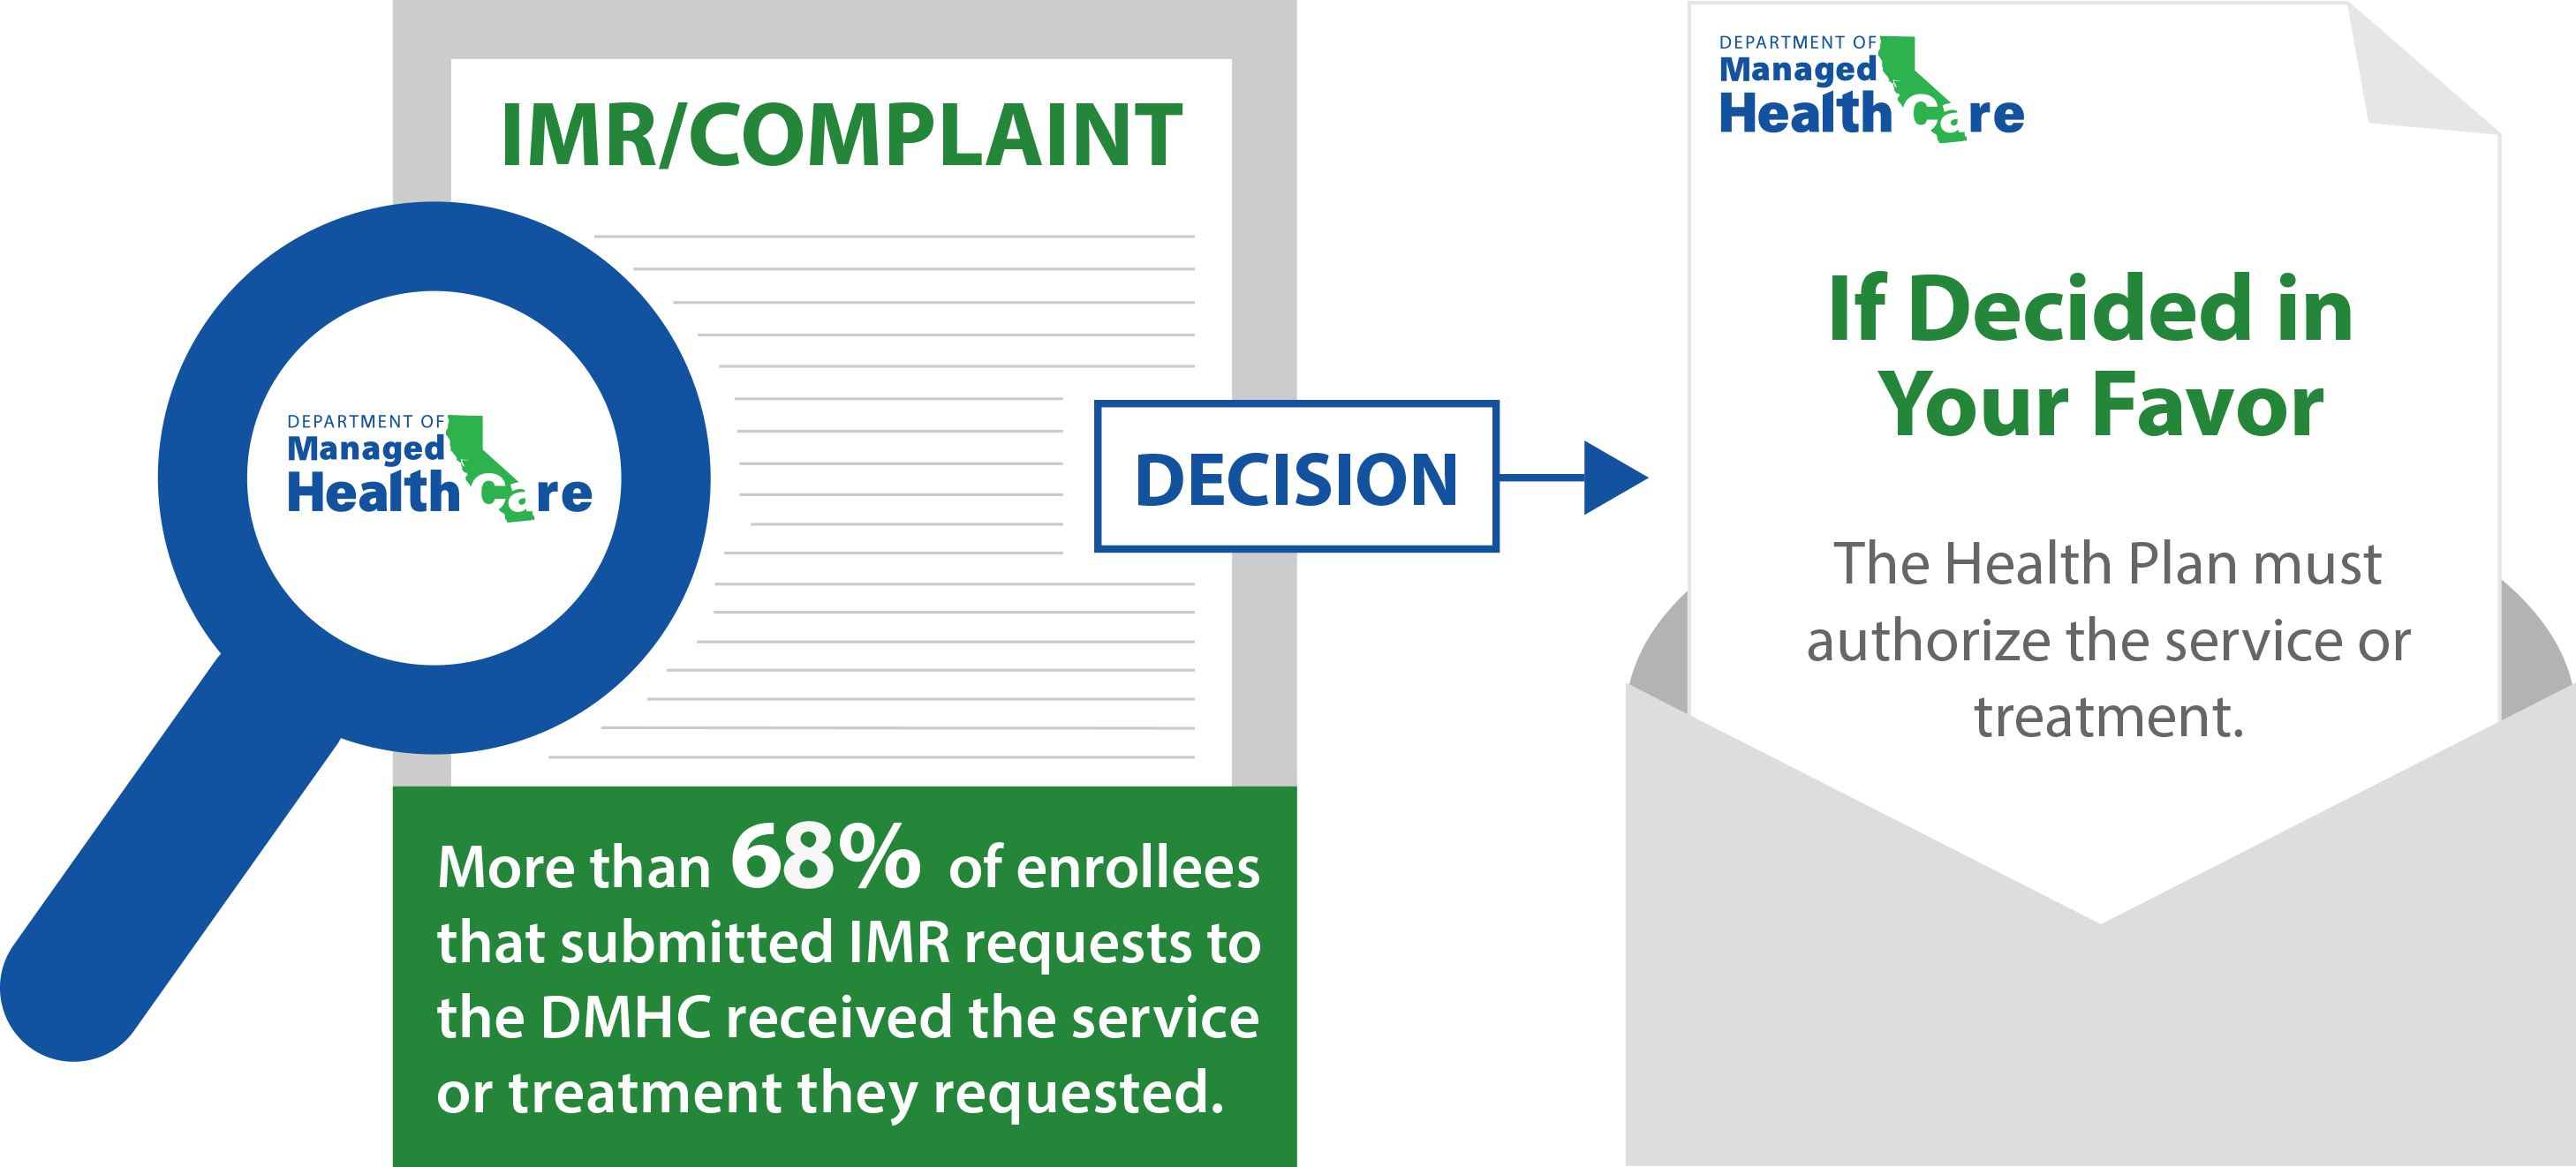 A graphic describing that if the IMR is decided in your favor, the health plan must authorize the service or treatment.